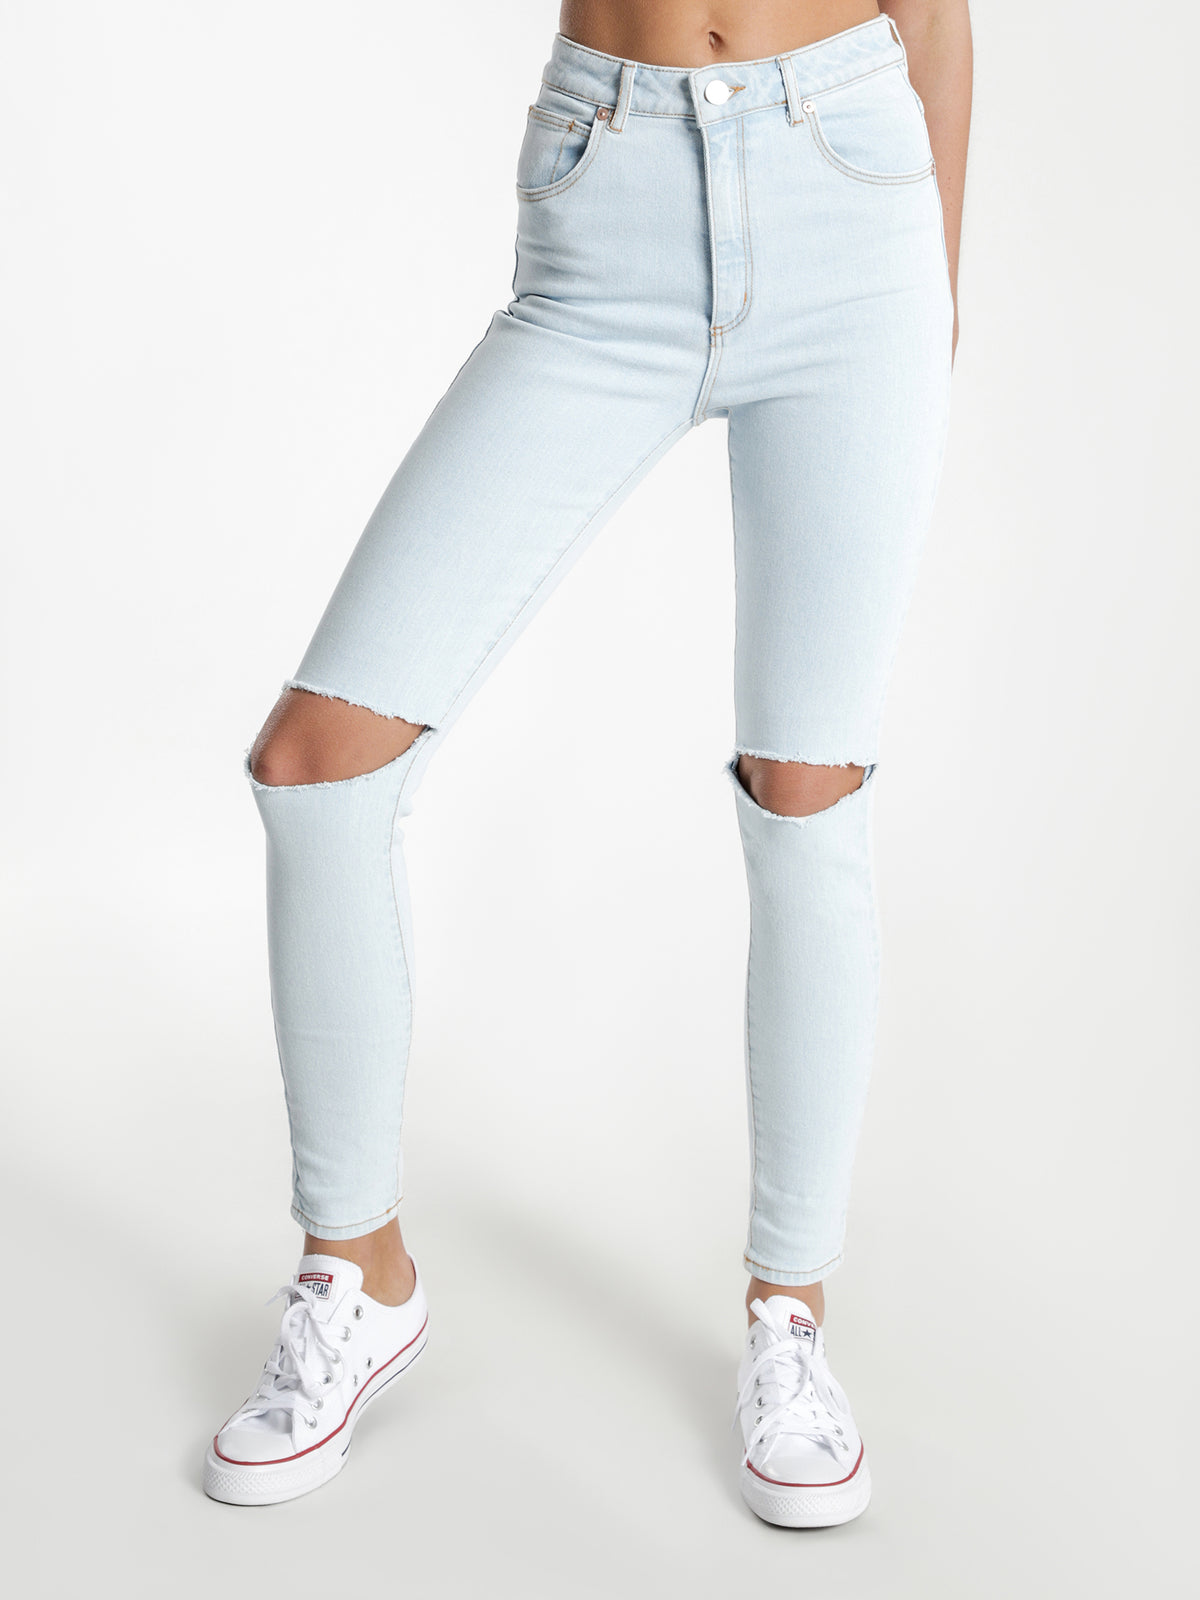 A High Skinny Ankle Basher in Baltimore Blue Denim